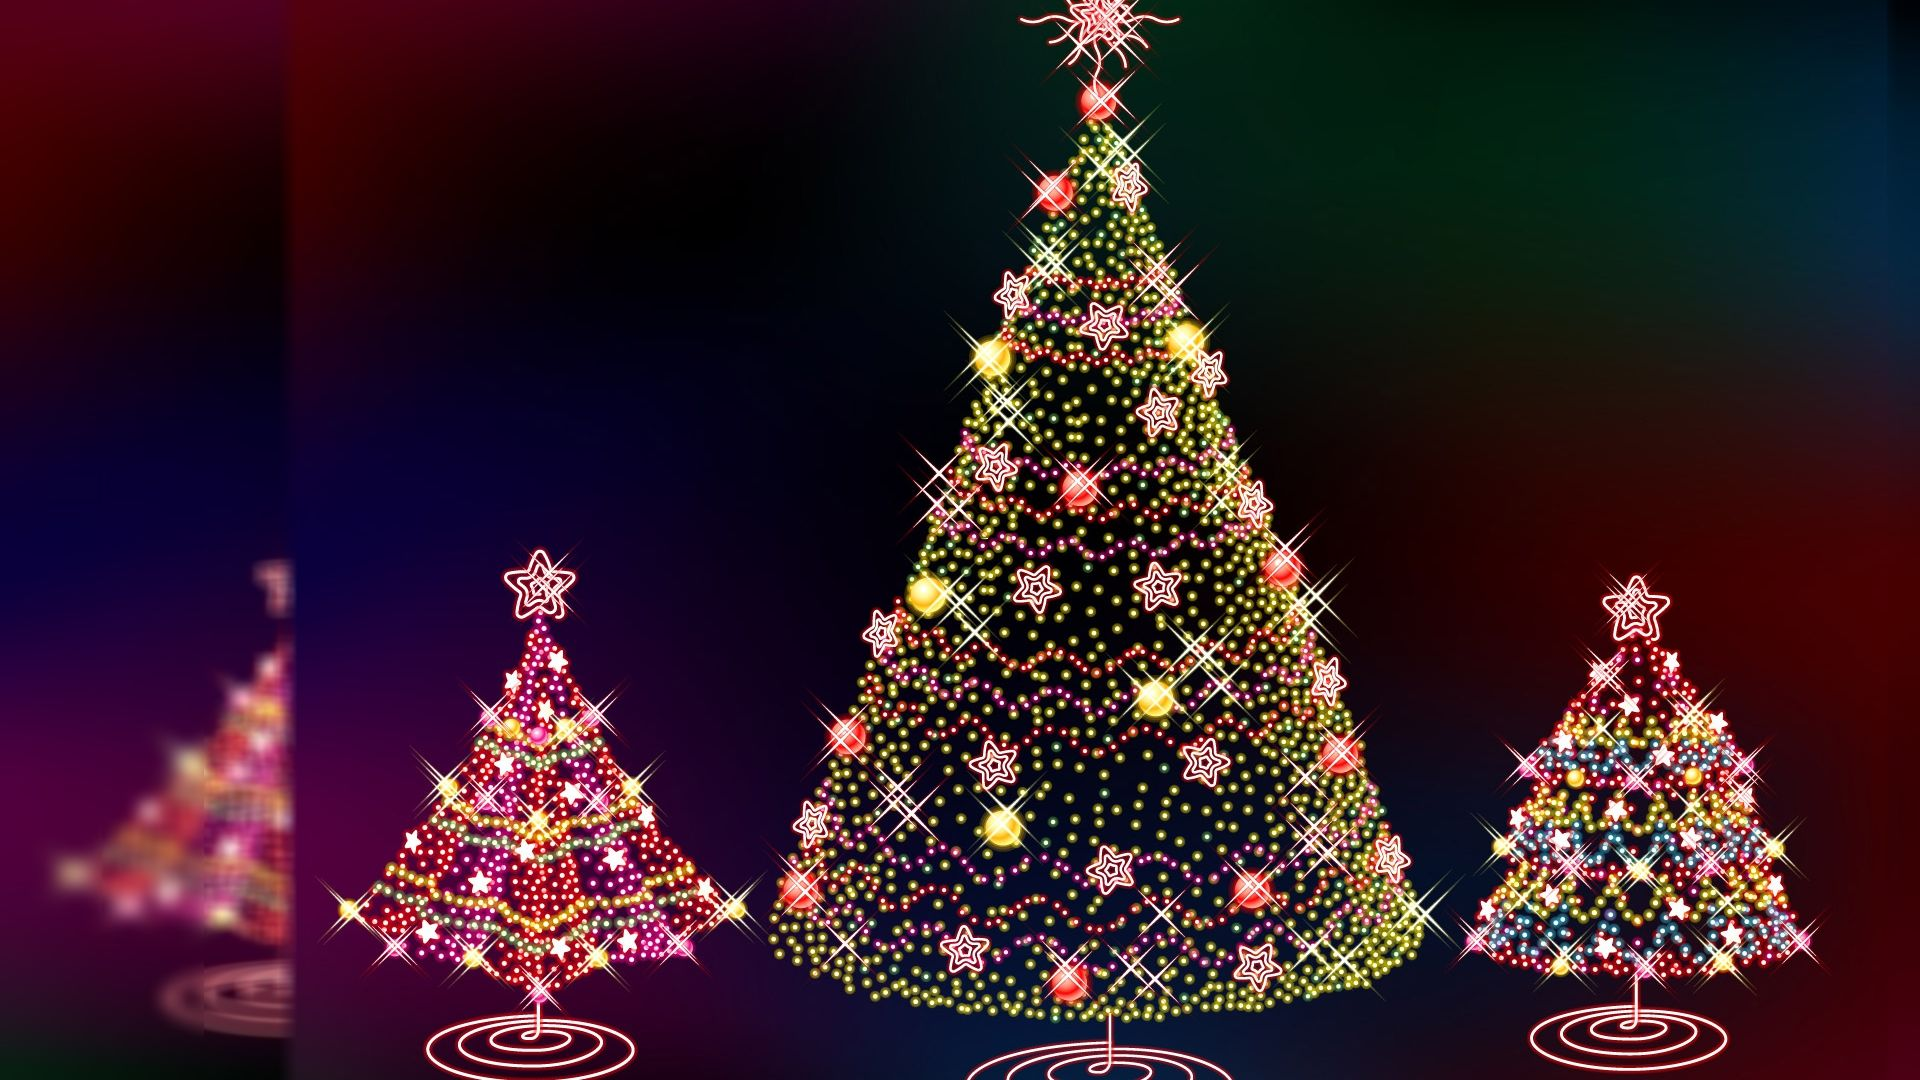 Christmas Wallpaper for Desktop Wallpapers9 CHRISTMAS